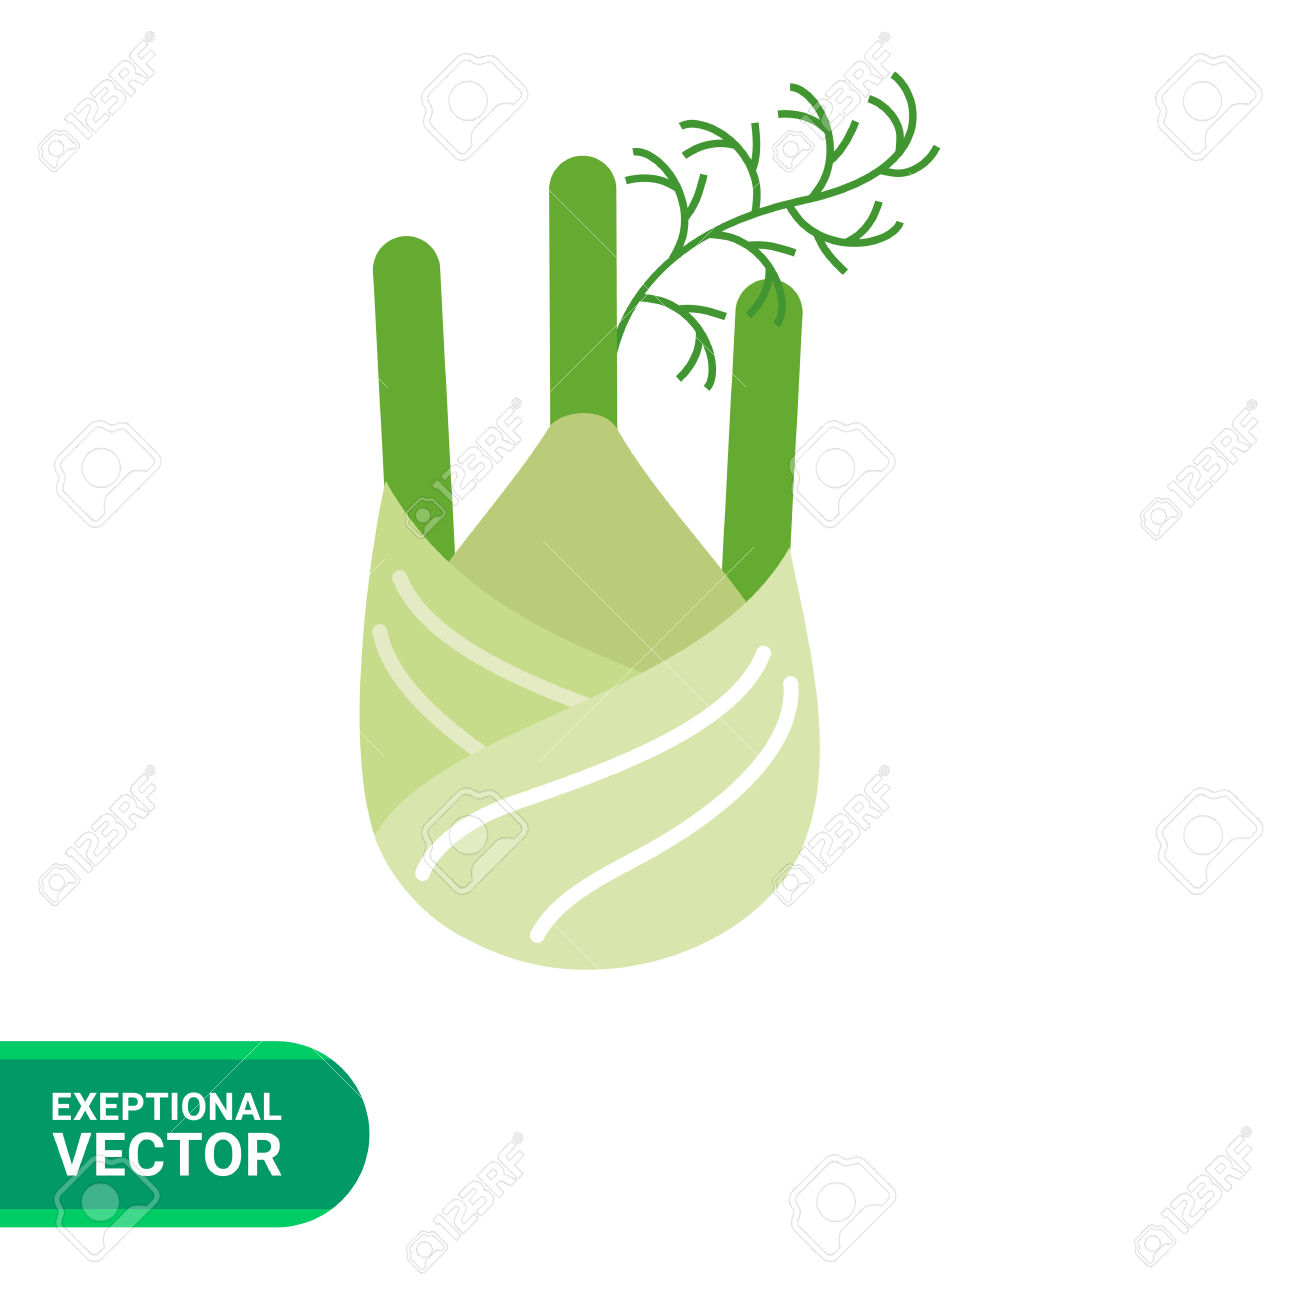 Vector Icon Of Fennel Root With Stem Parts Royalty Free Cliparts.